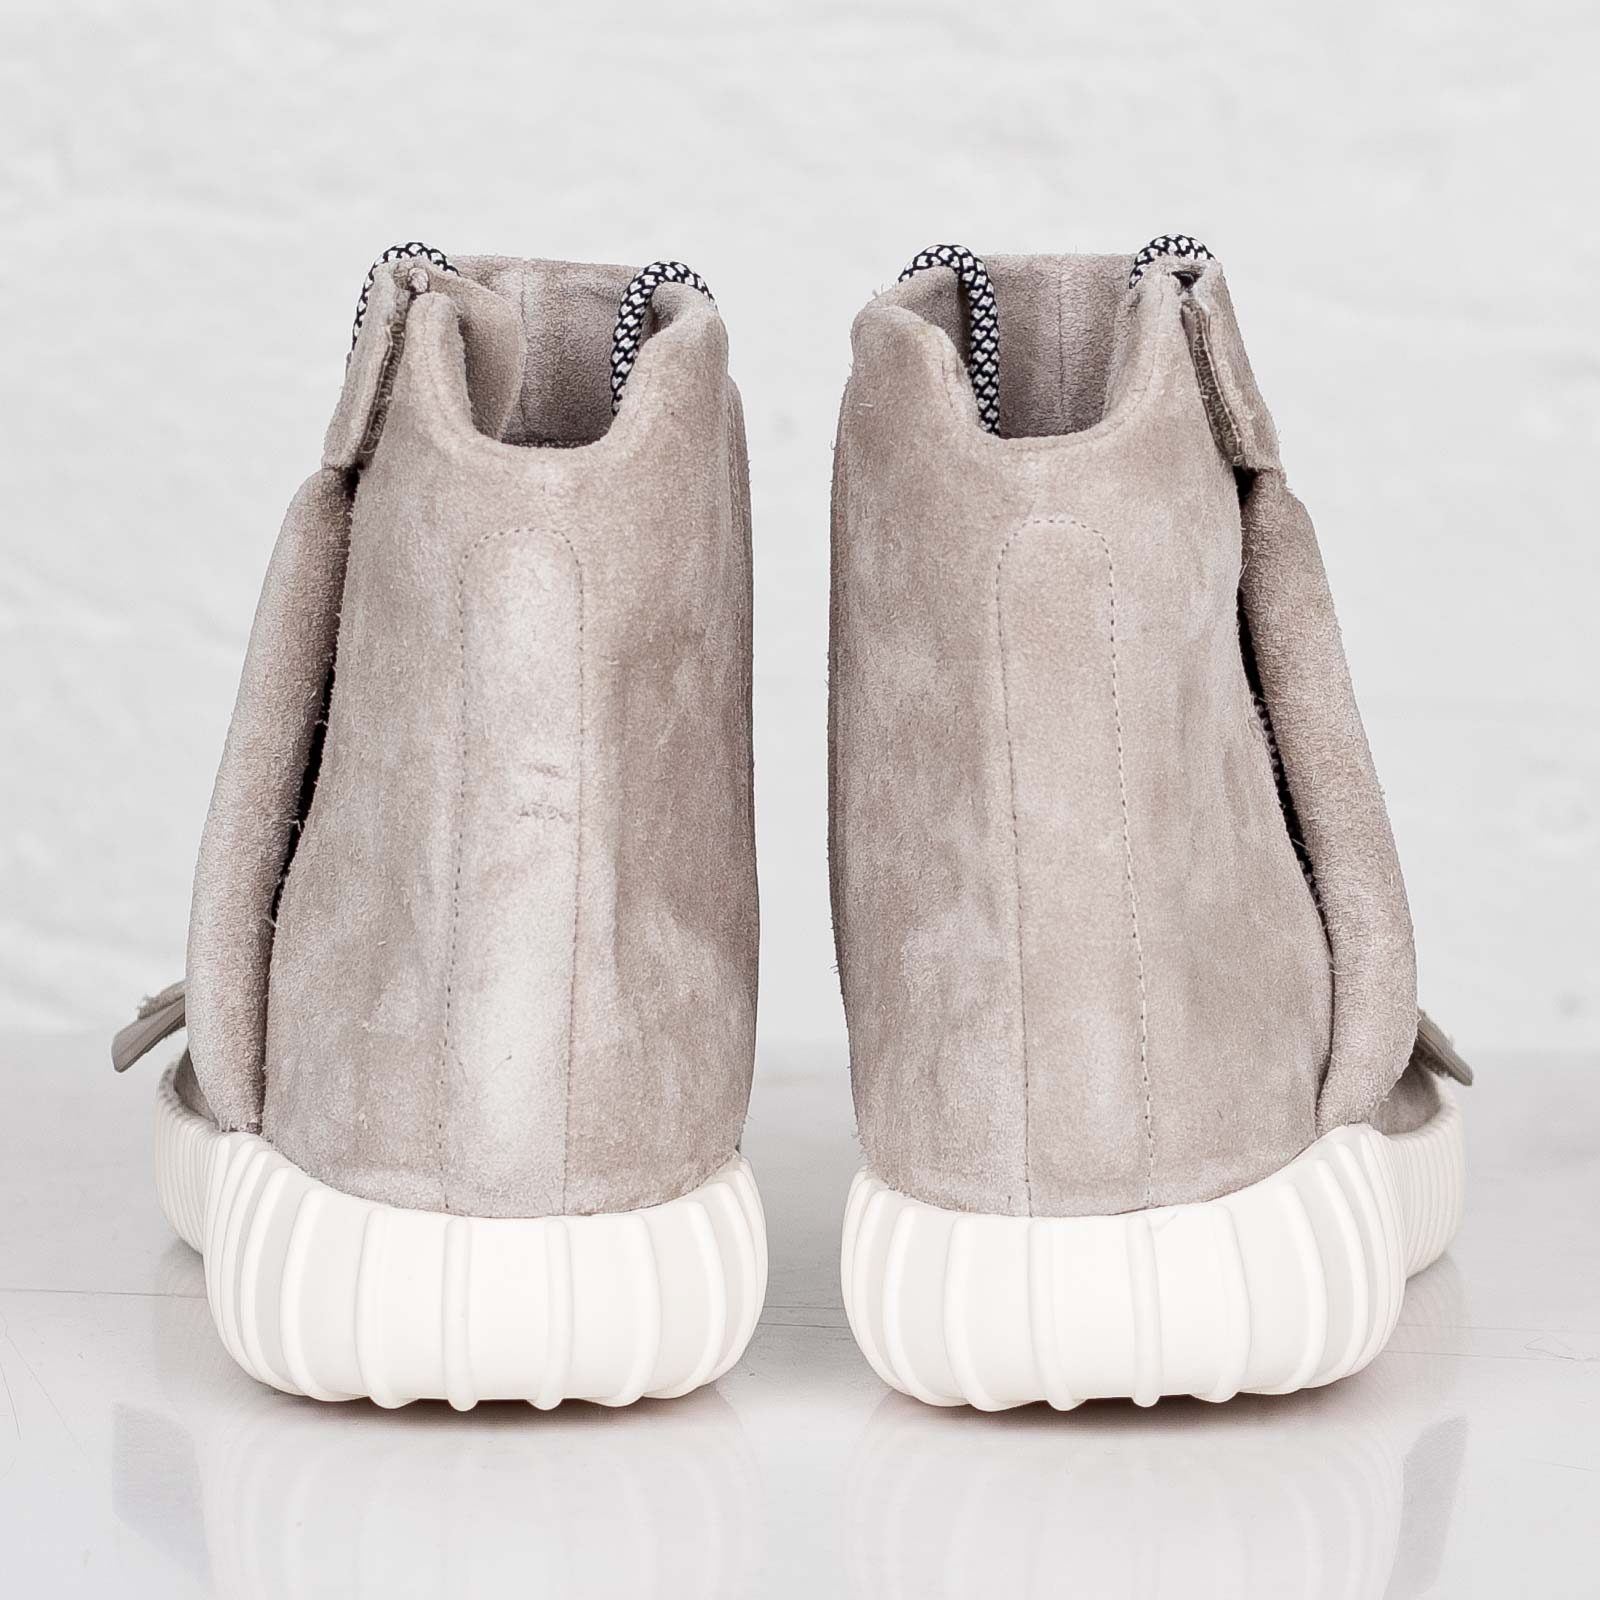 buy popular bb1f2 3ce9d ... adidas Originals x Kanye West Yeezy 750 Boost ...